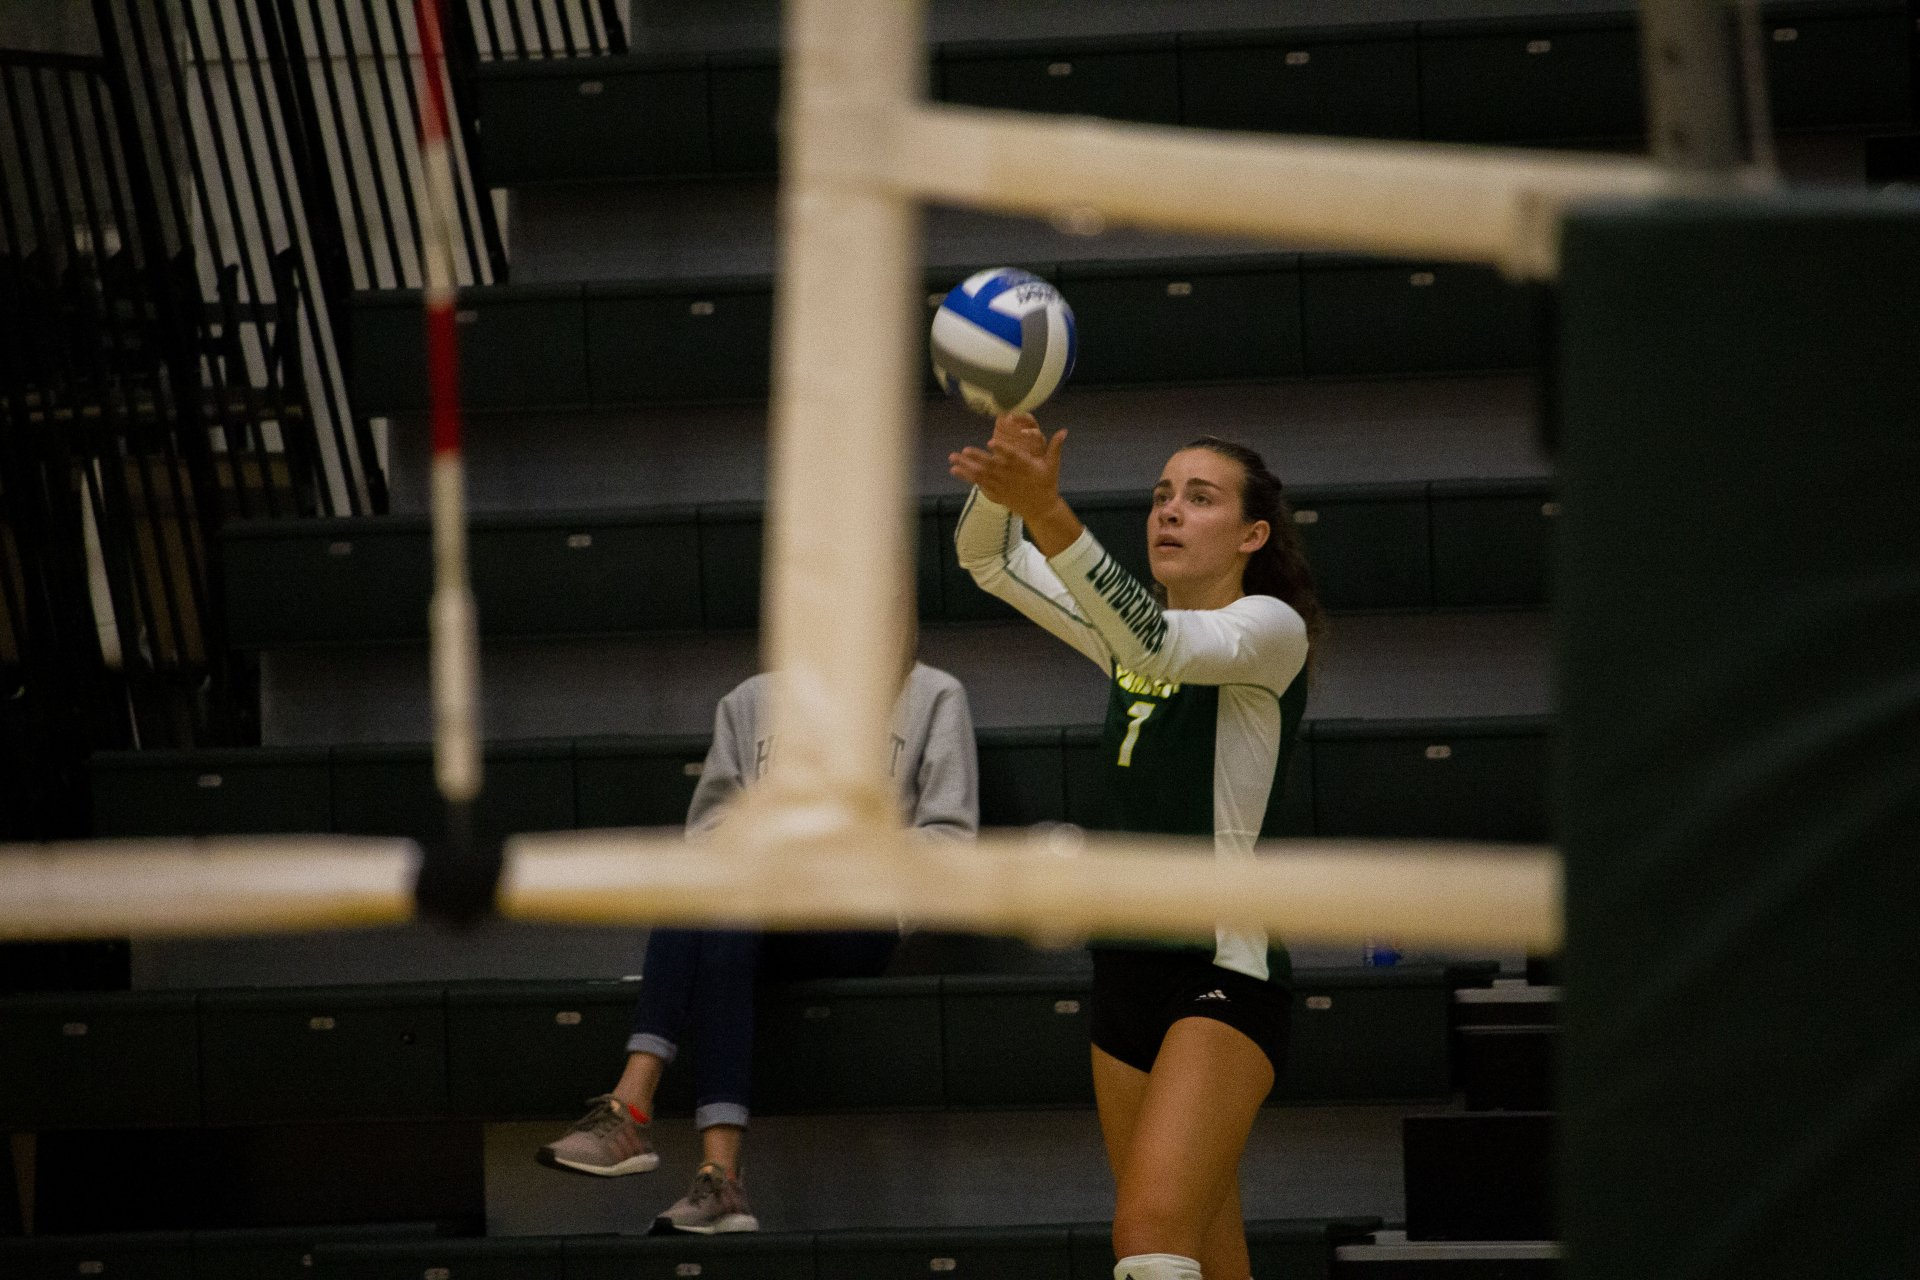 Outside hitter Lenox Love serves the ball during the third and final set  during Humboldt State's match against Cal State San Bernardino at Lumberjack Arena on Sept. 21. | Photo by Thomas Lal